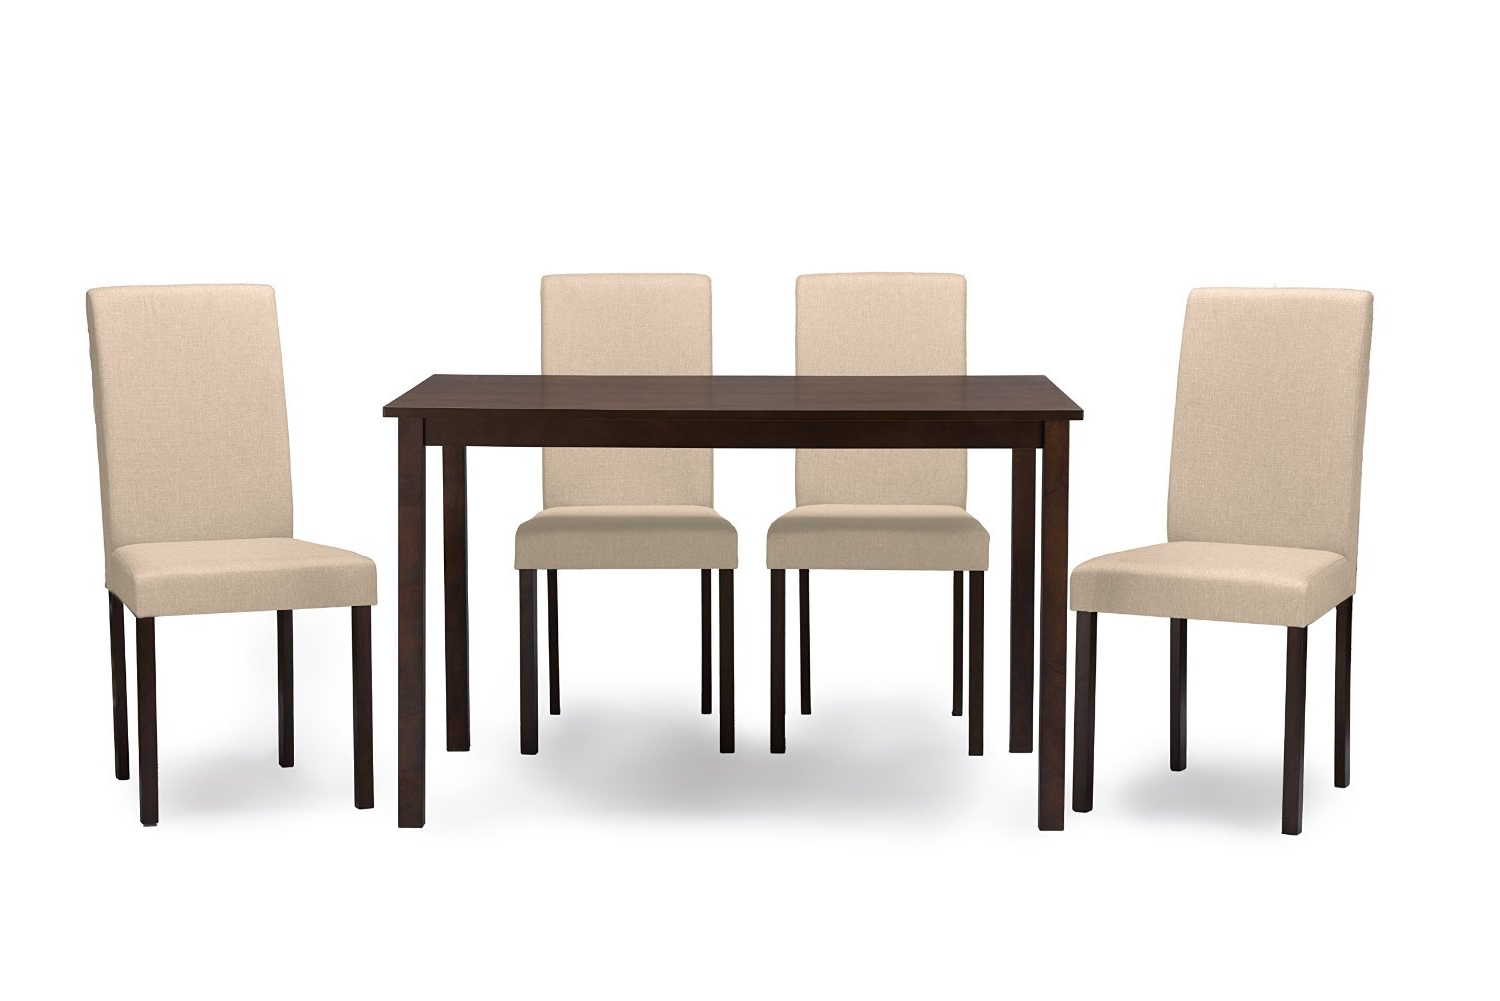 Cheap Contemporary Dining Set, Find Contemporary Dining Set Within Best And Newest Espresso Finish Wood Classic Design Dining Tables (View 4 of 30)